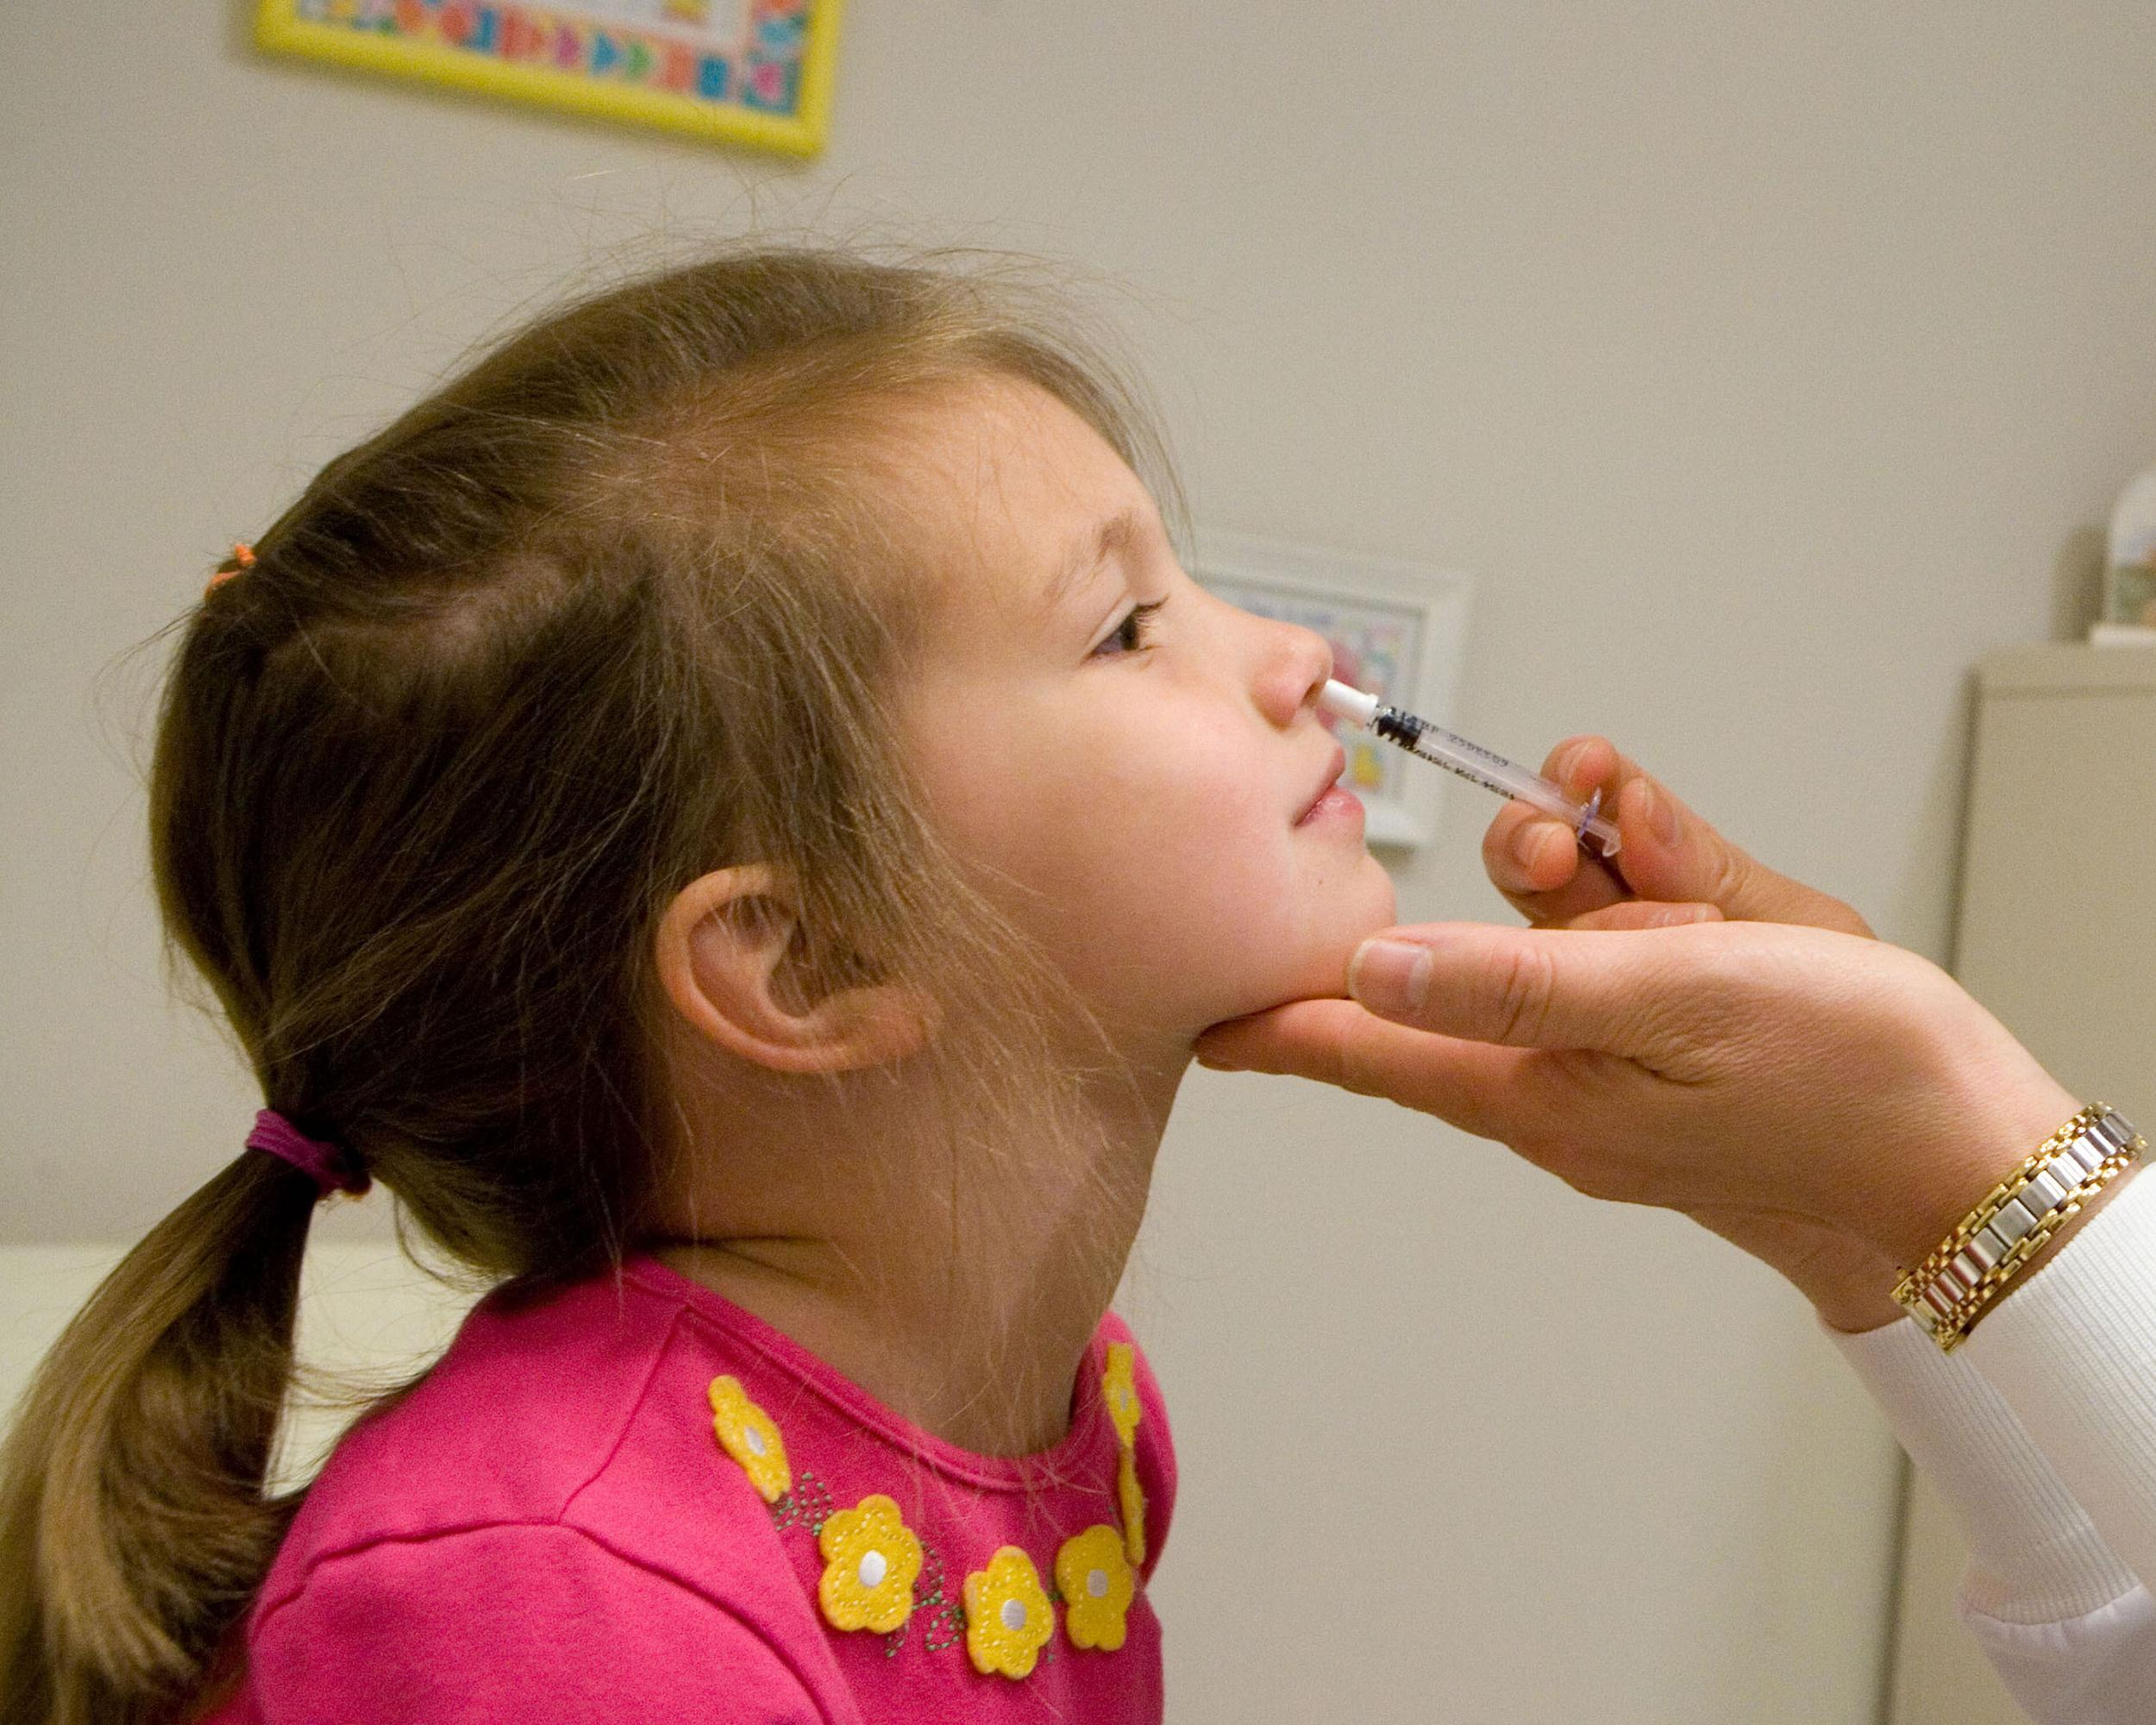 FluMist will be back next year